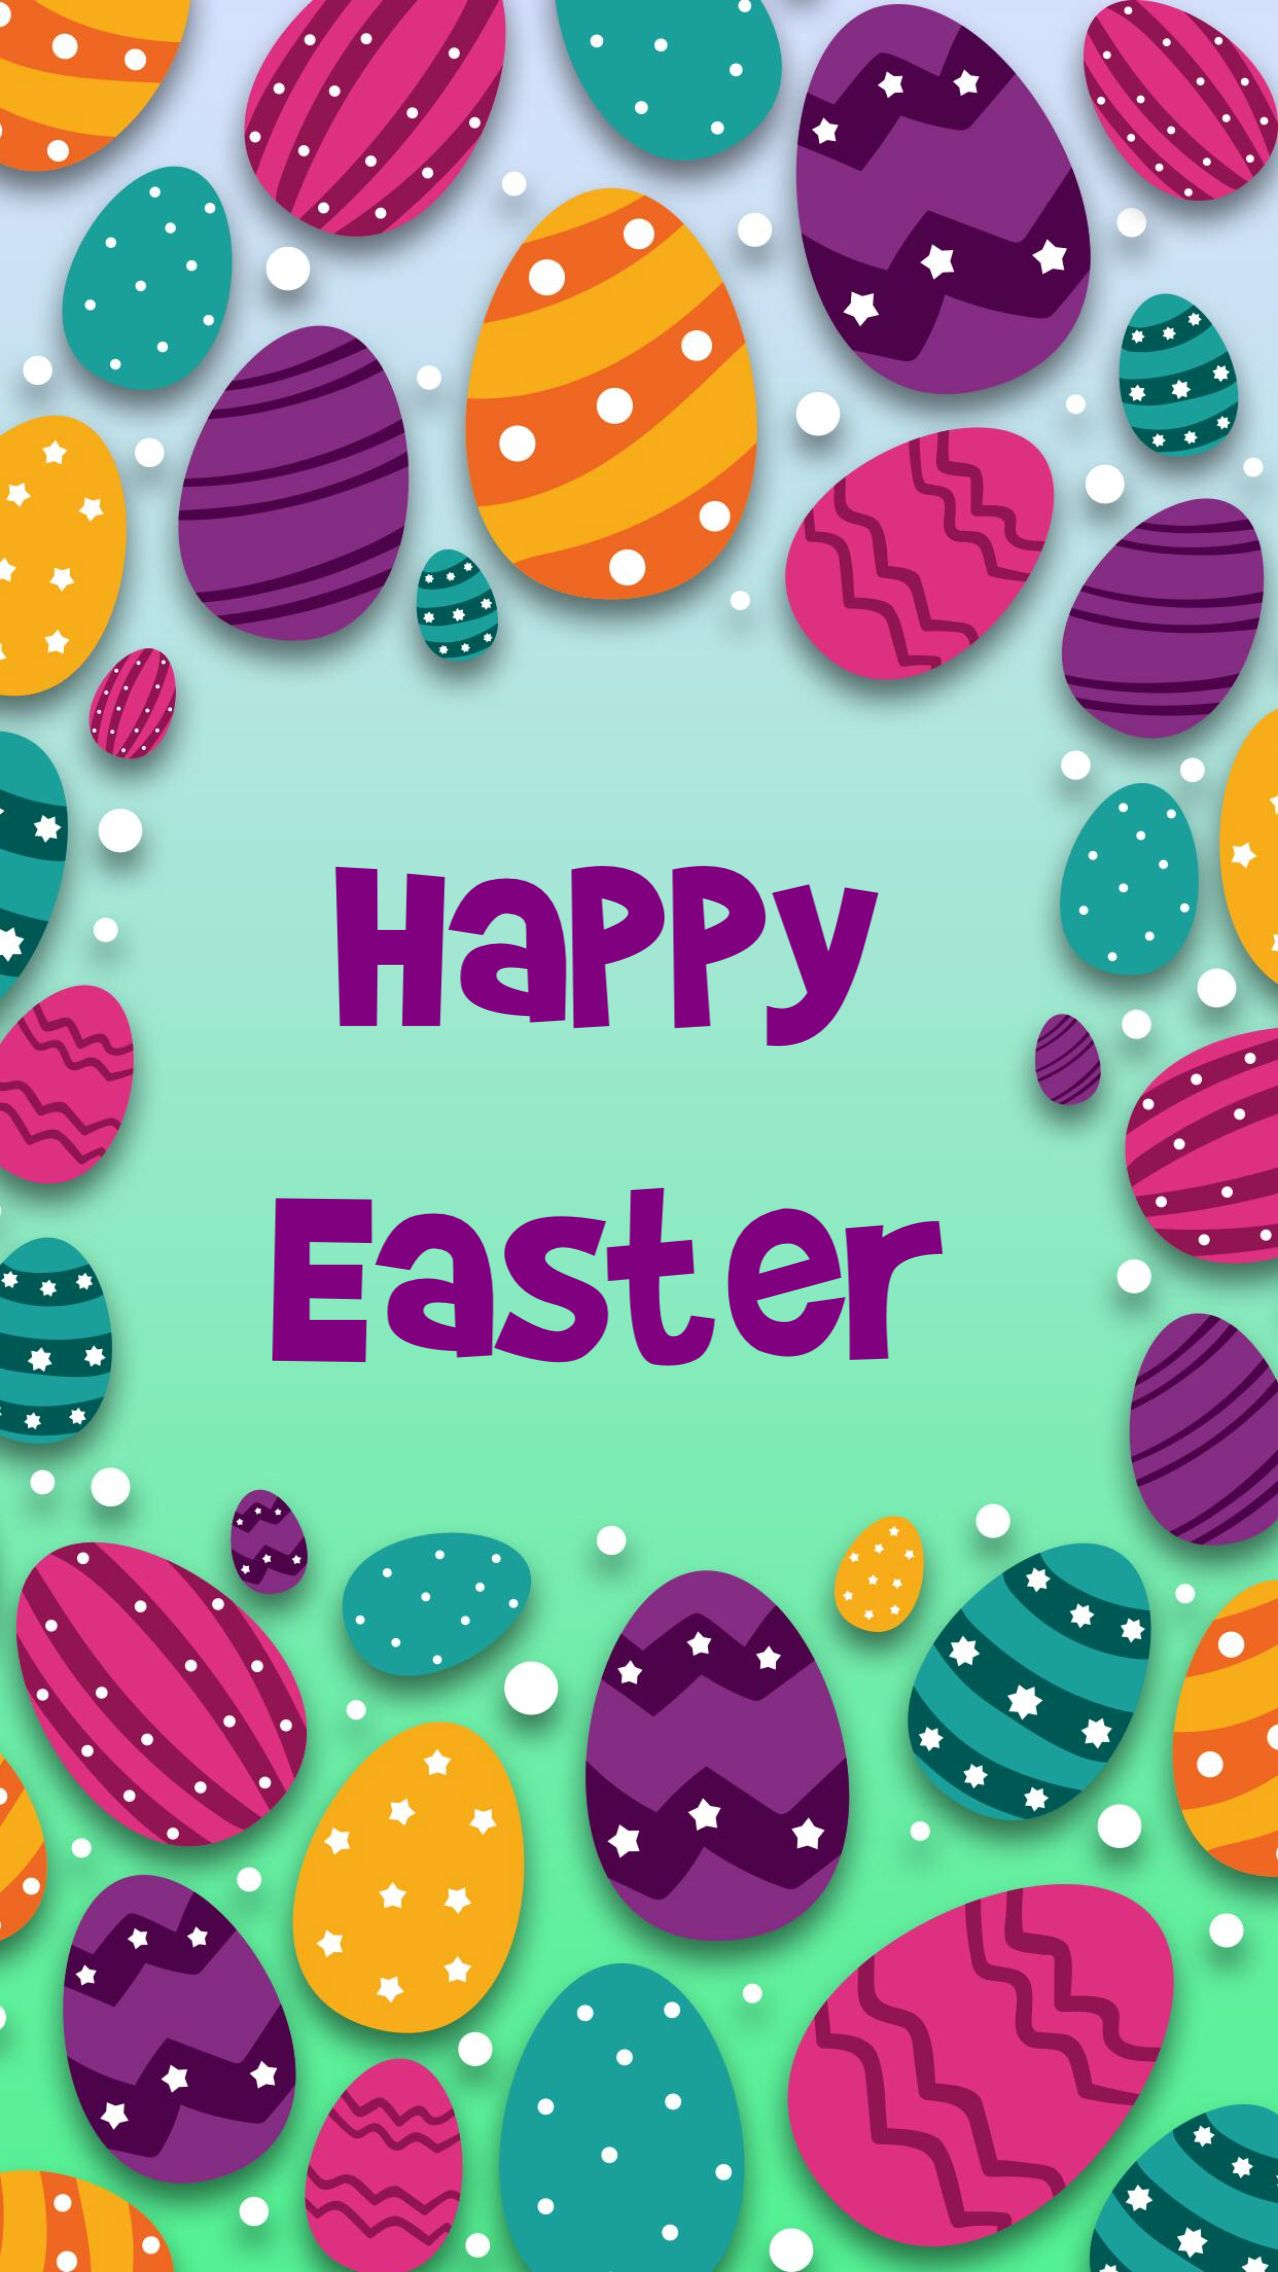 Iphone Wall Easter Tjn With Images Happy Easter Wallpaper